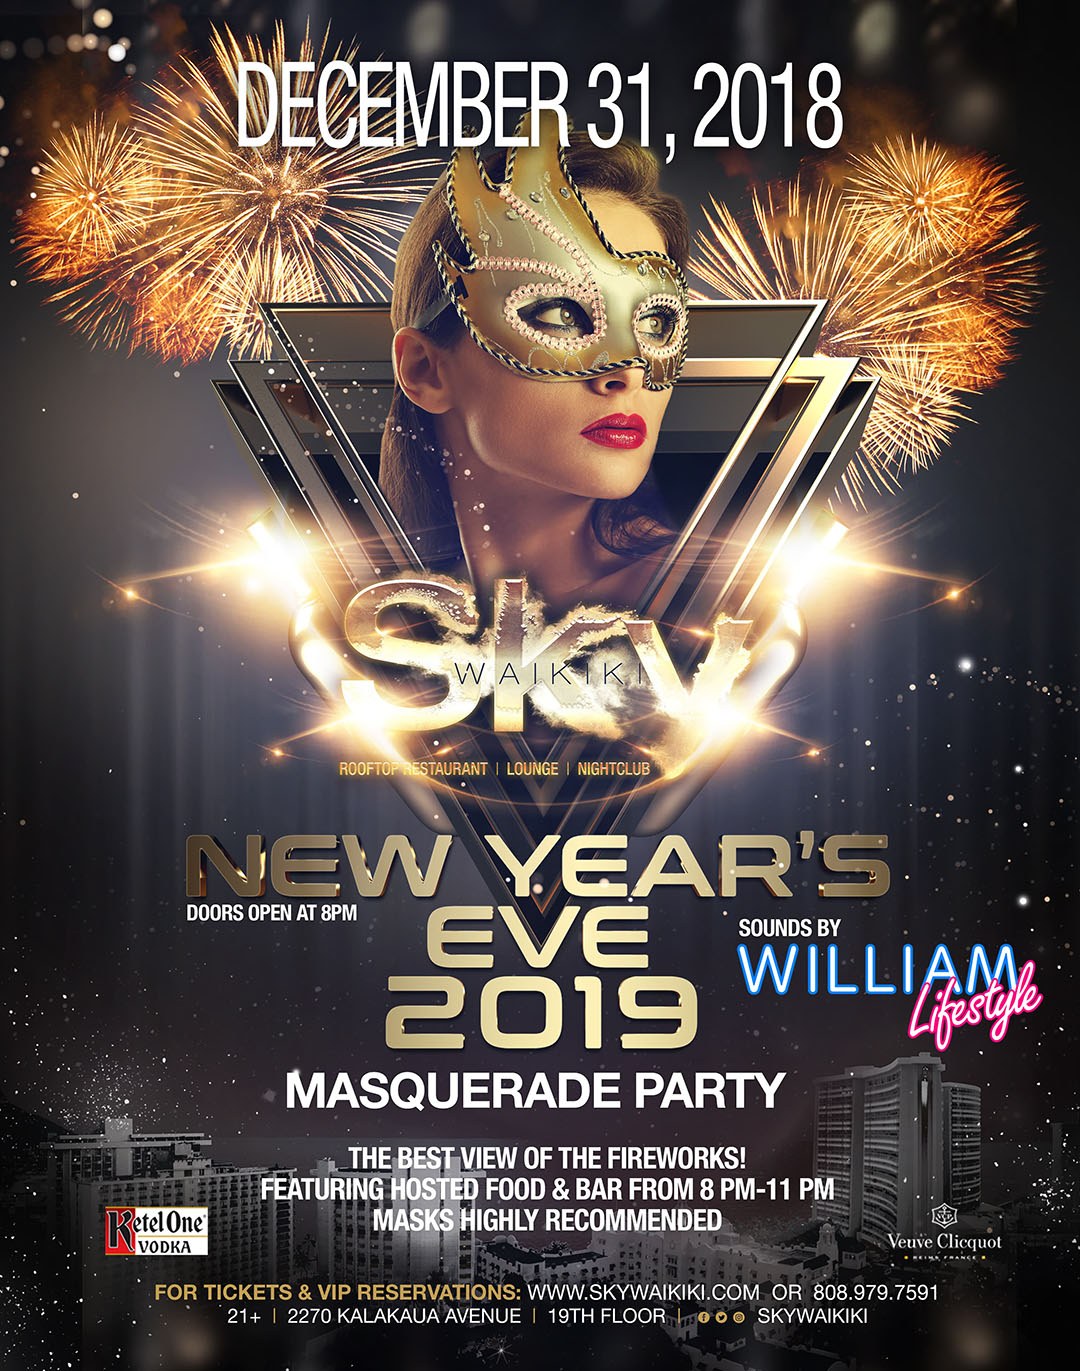 New Year's Eve 2019 Masquerade Party